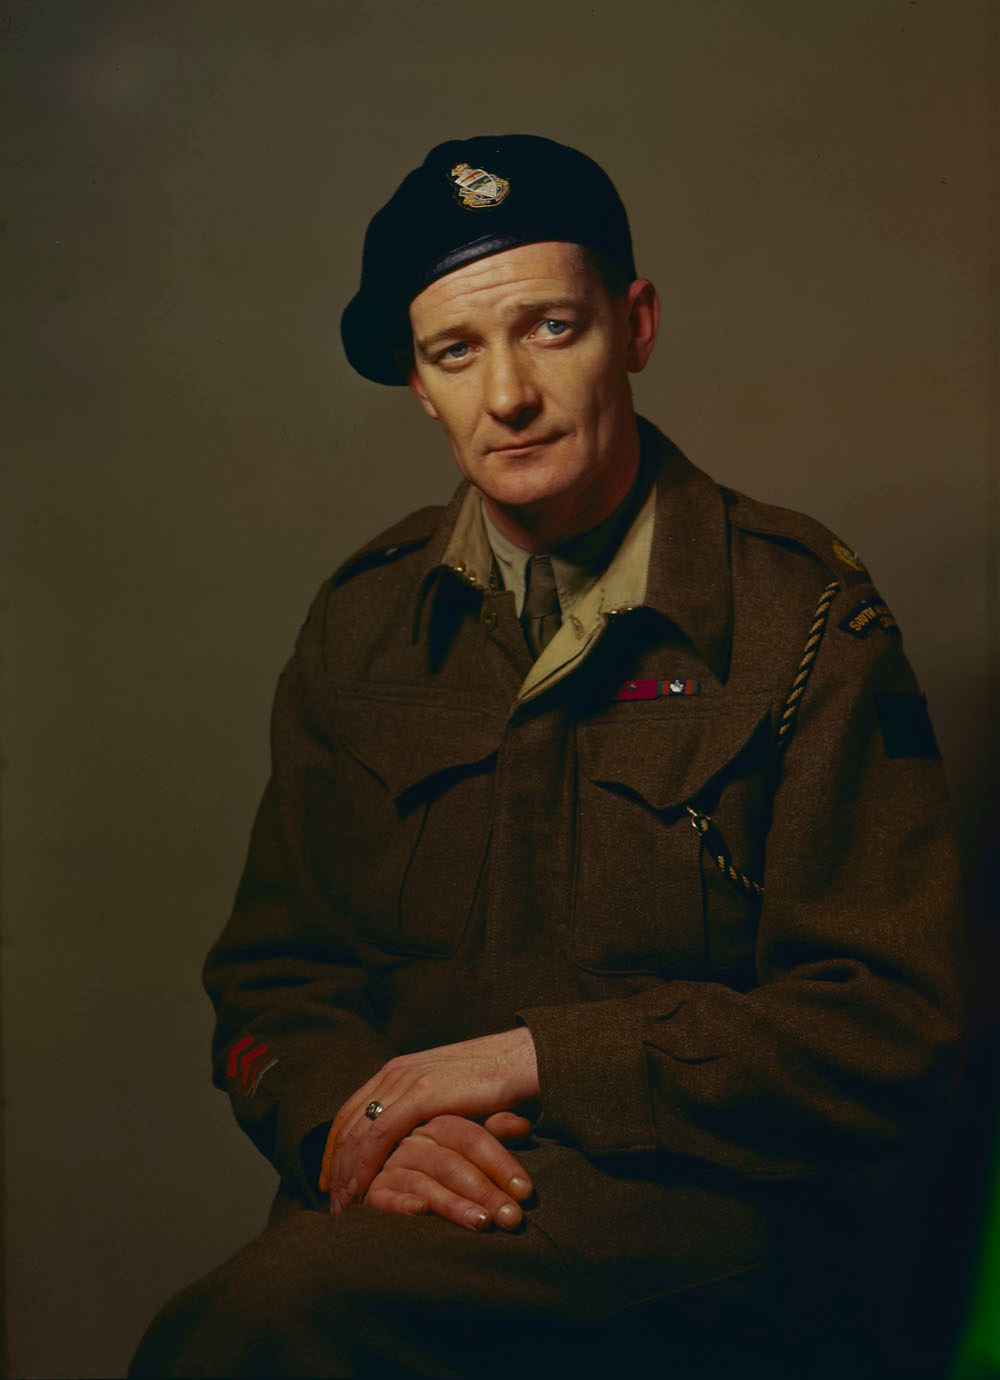 Lt Colonel David Vivian Currie